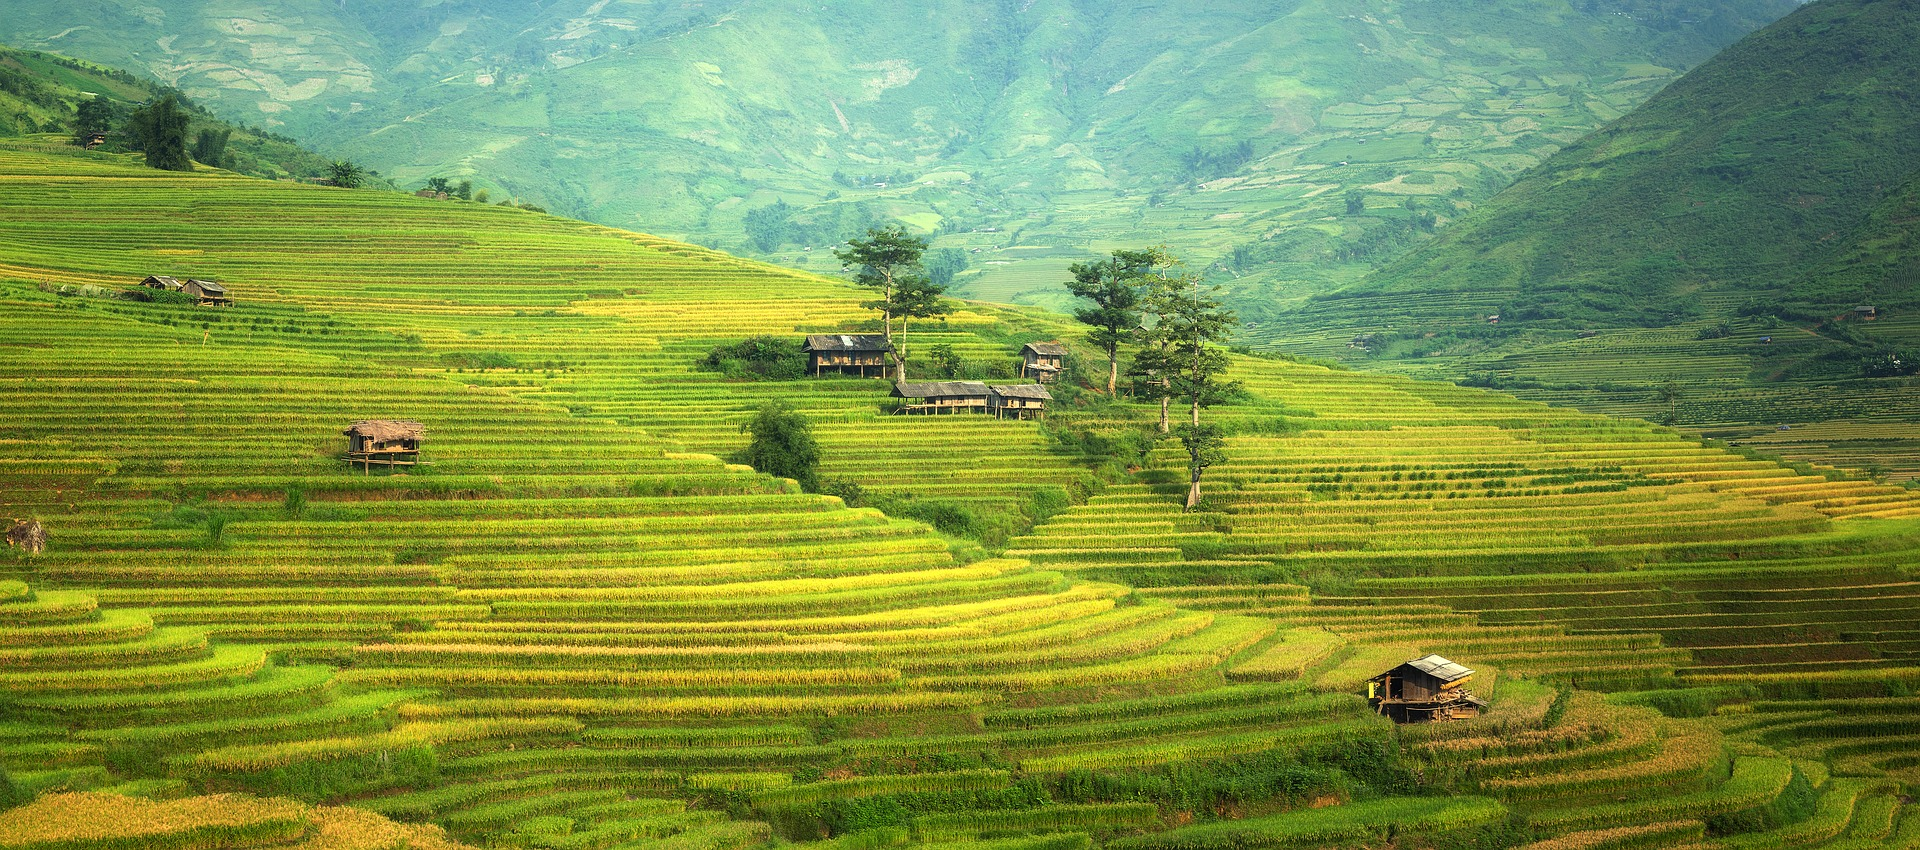 agriculture-rice.jpg